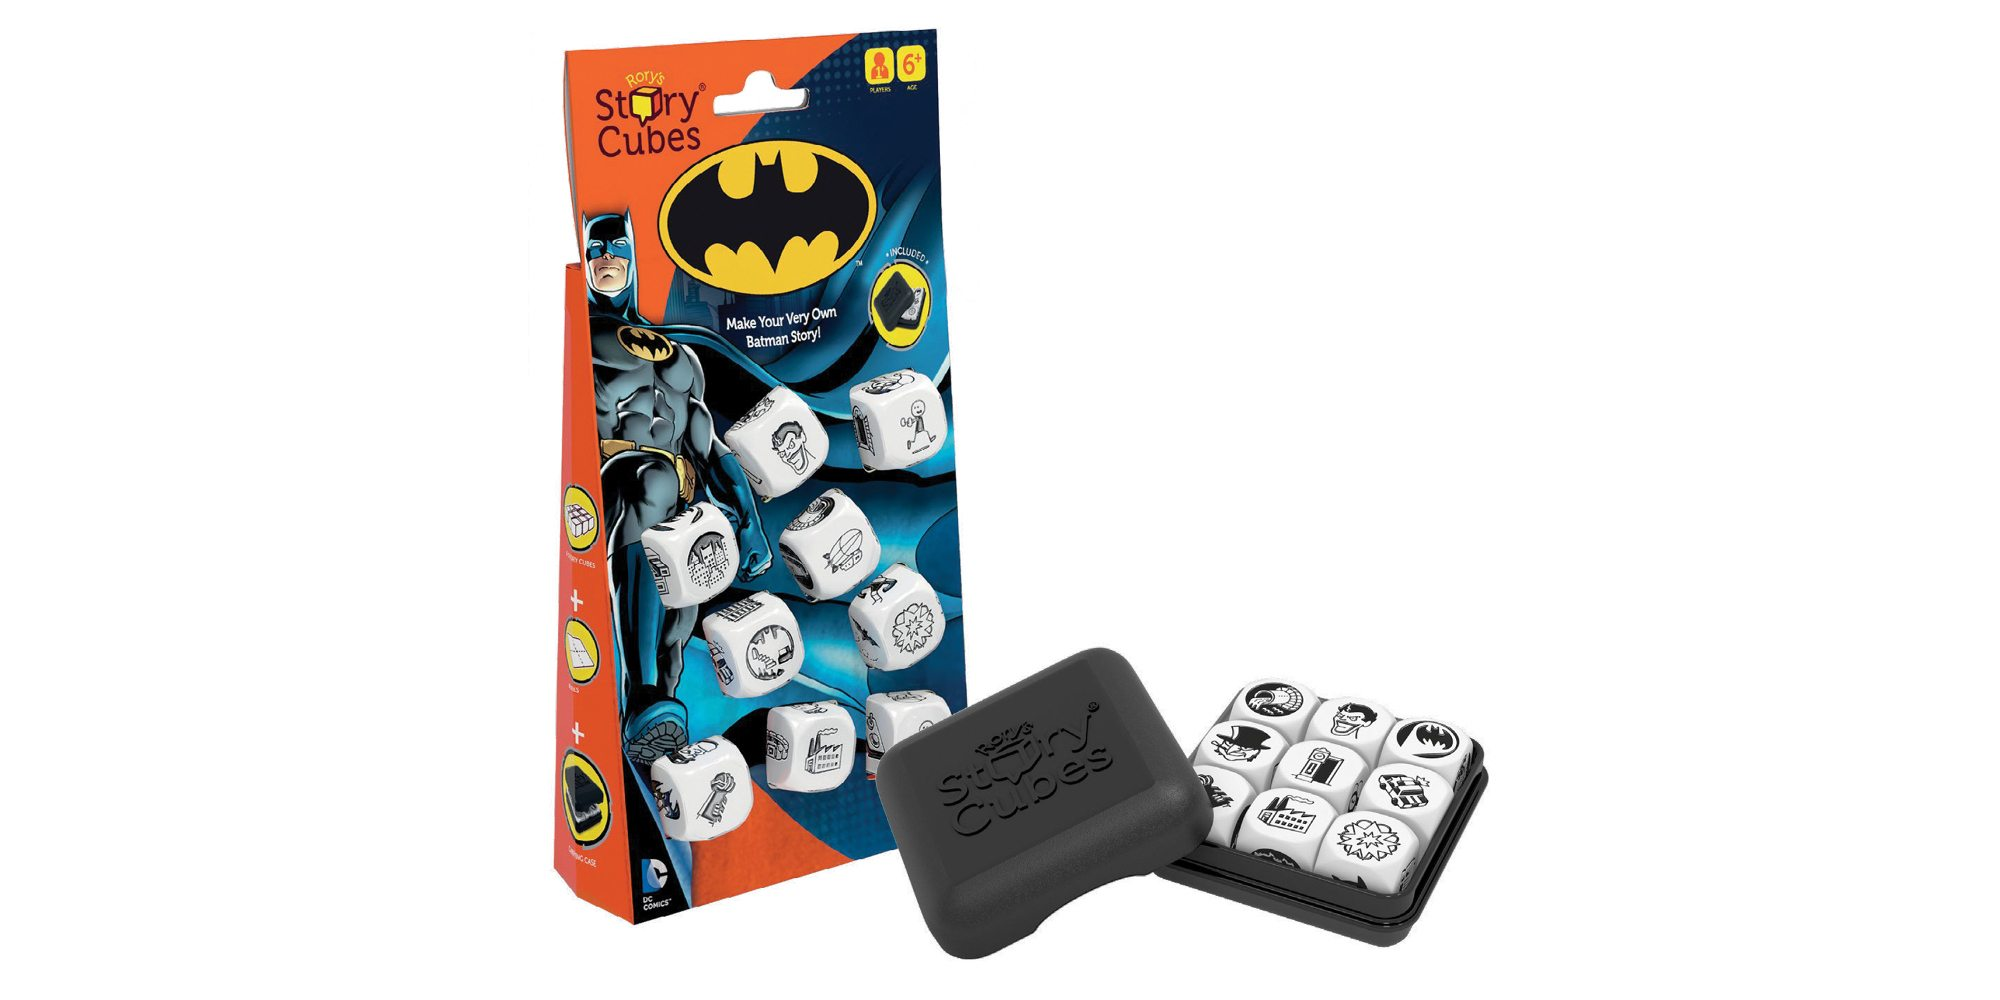 Make Your Very Own Batman Story With 'Rory's Story Cubes: Batman'